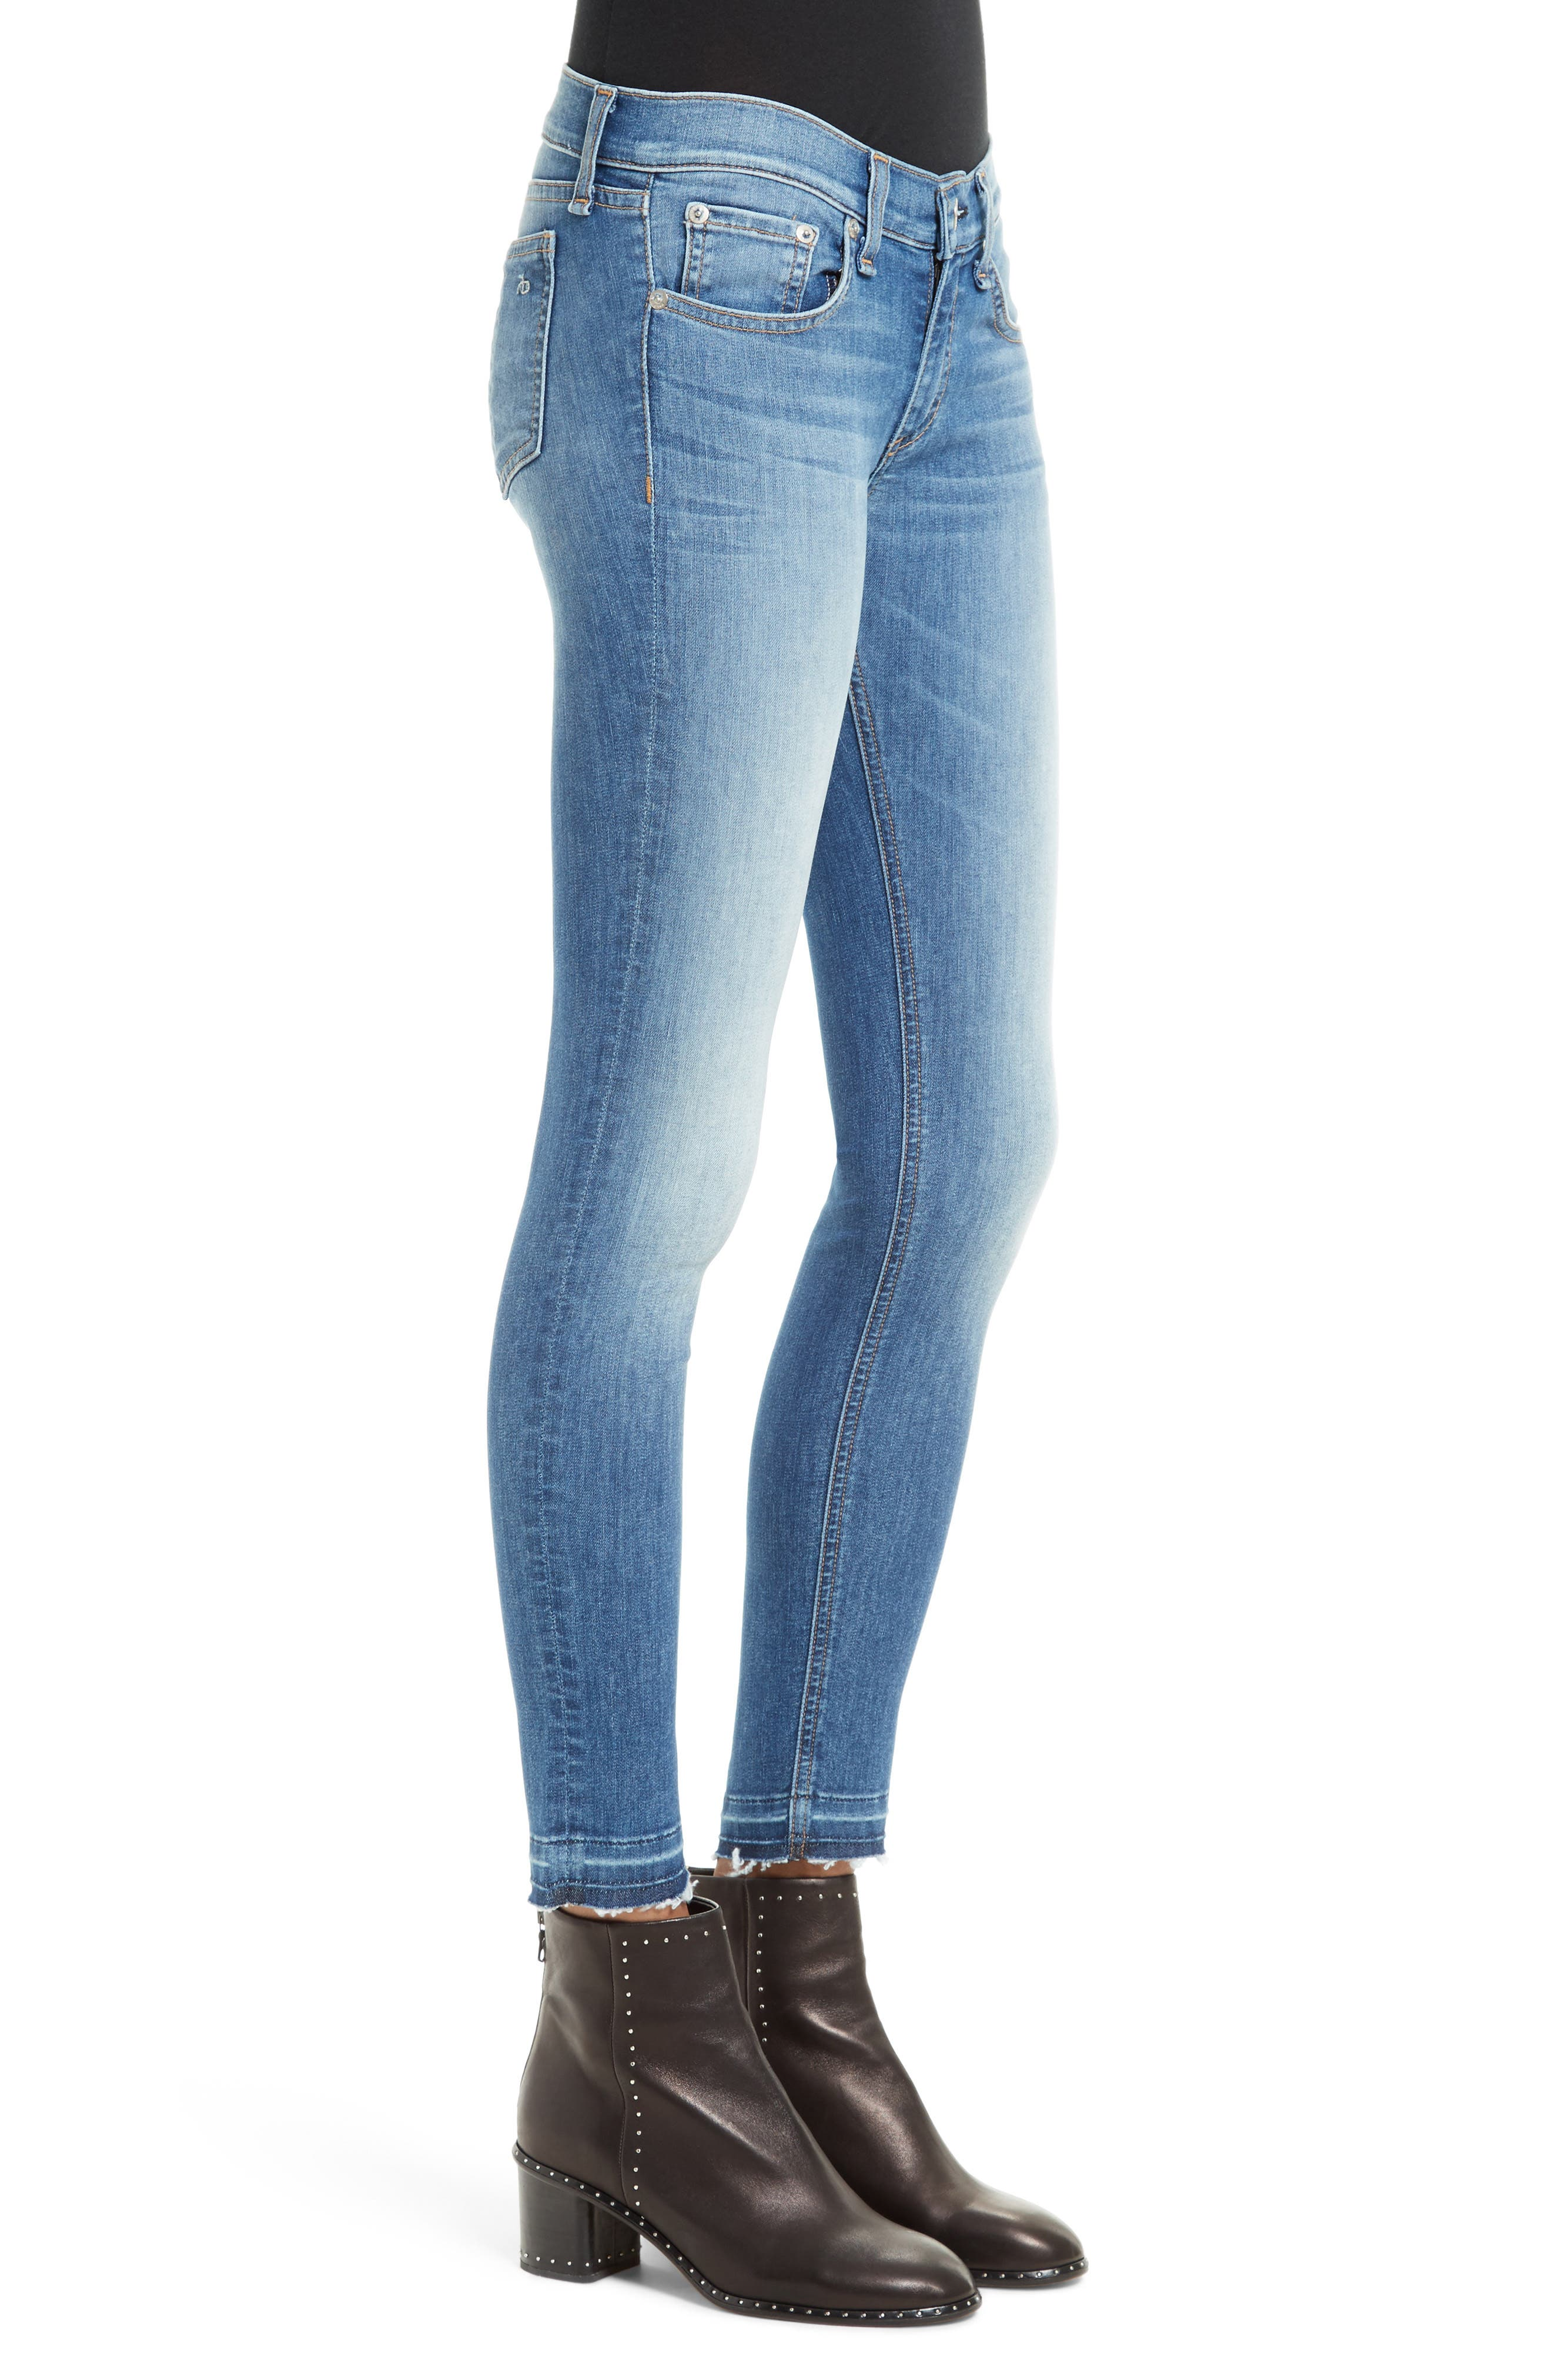 Capri Skinny Jeans,                             Alternate thumbnail 3, color,                             CLEAN LILLY DALE